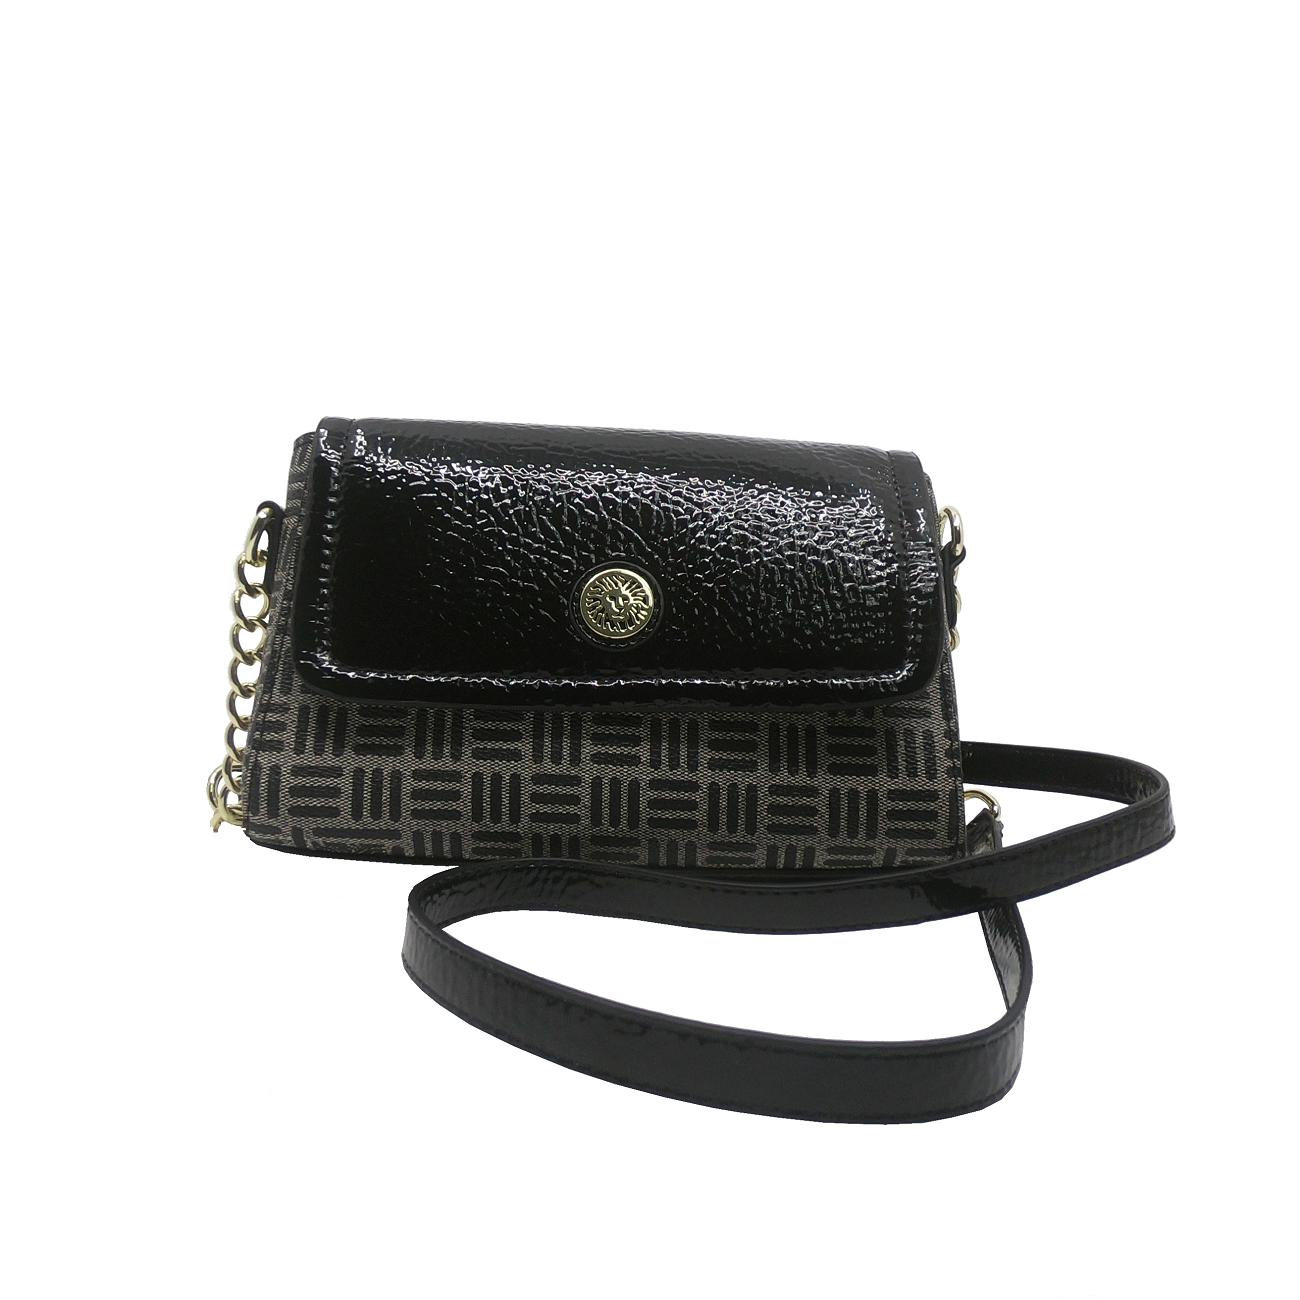 47f7ed88eb2 Anne Klein Bags for Women Philippines - Anne Klein Womens Bags for sale -  prices   reviews   Lazada